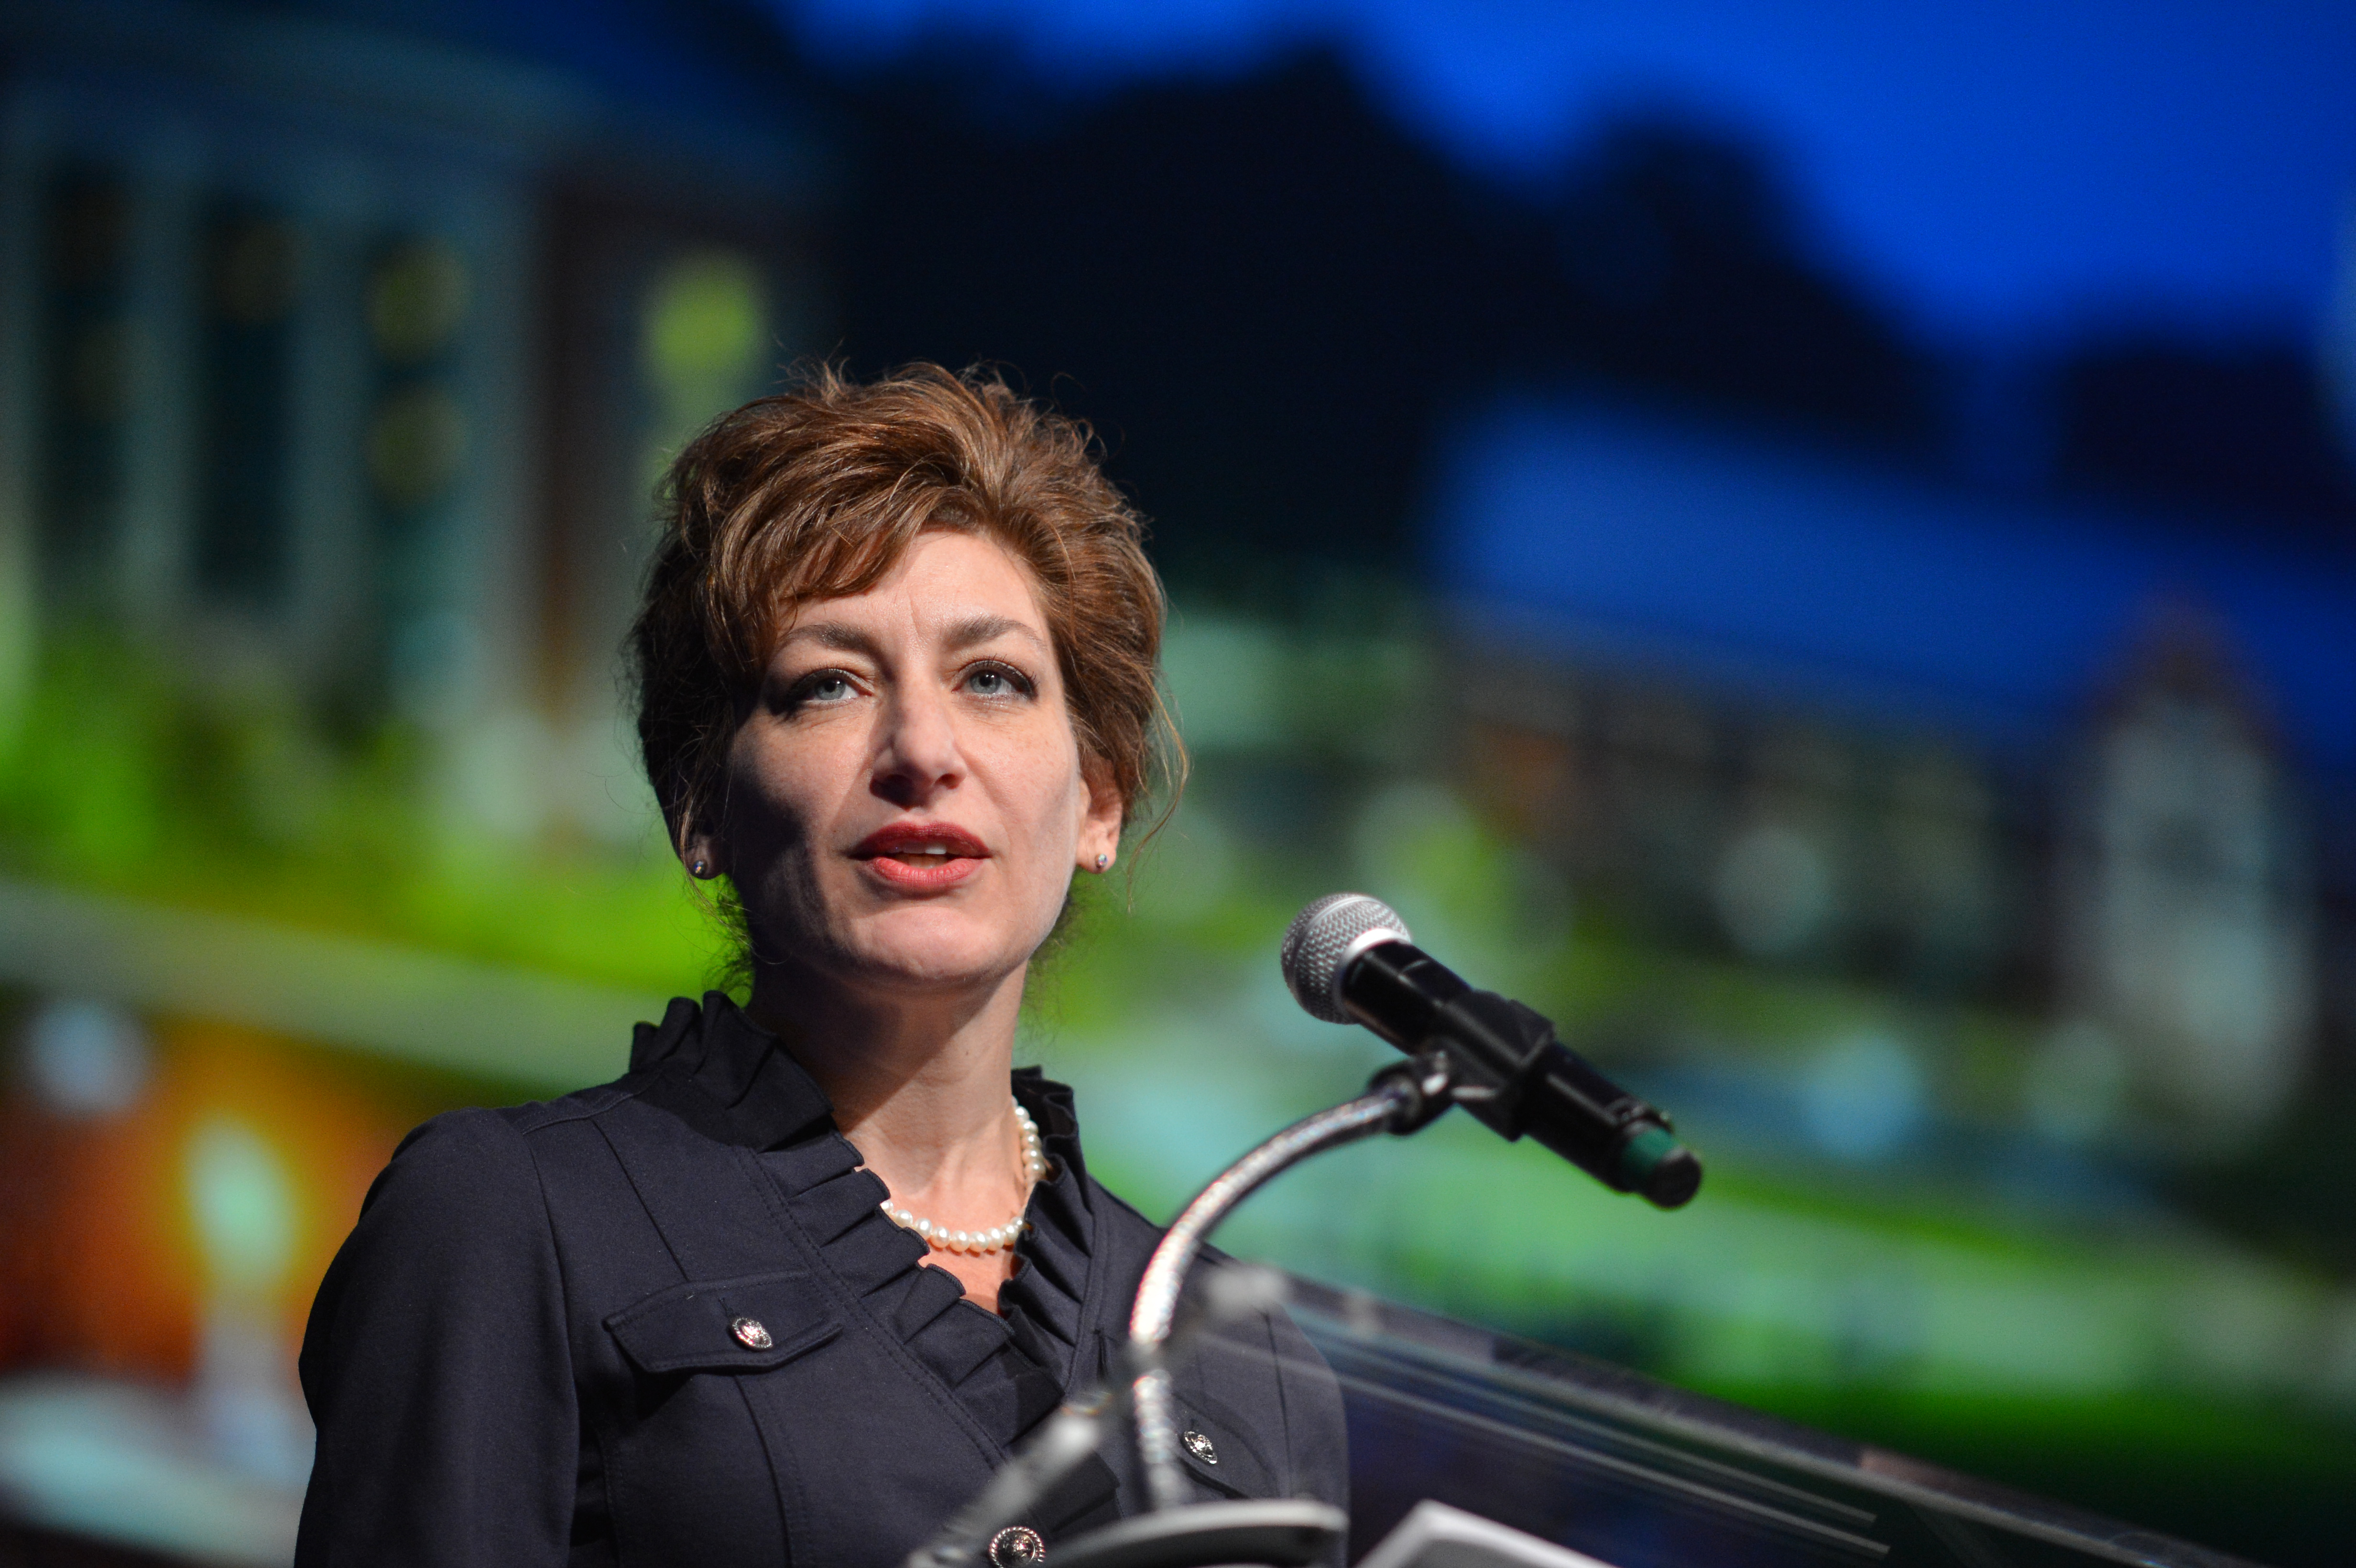 As Susan Herbst prepares to complete her presidency, faculty, staff, students, and alumni reflect on the impact she has had on the UConn community over the past eight years. (Peter Morenus/UConn File Photo)